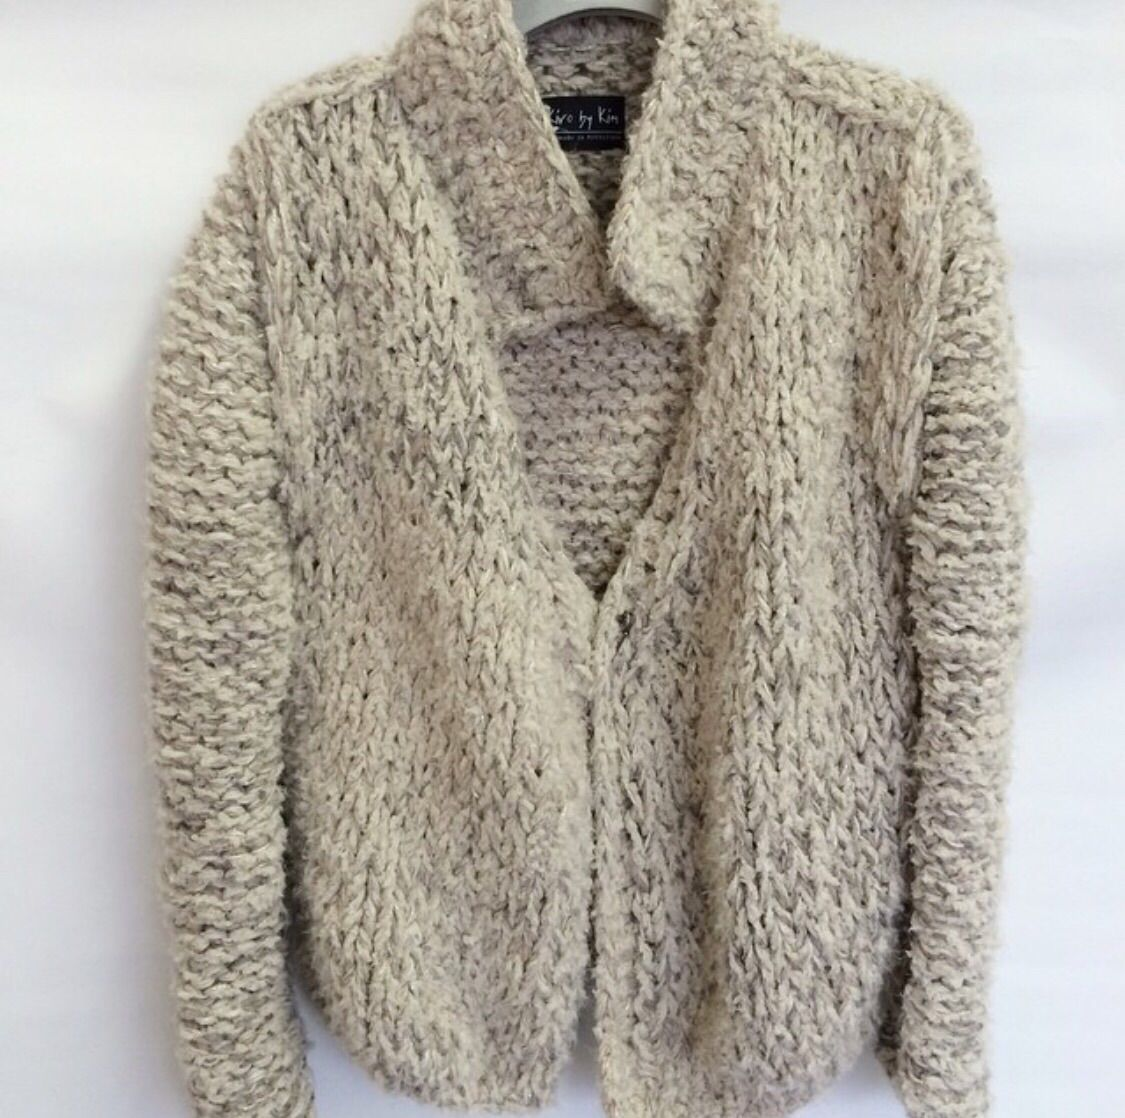 Short chunky cardigan | Dziewiarstwo(knitting) | Pinterest ...